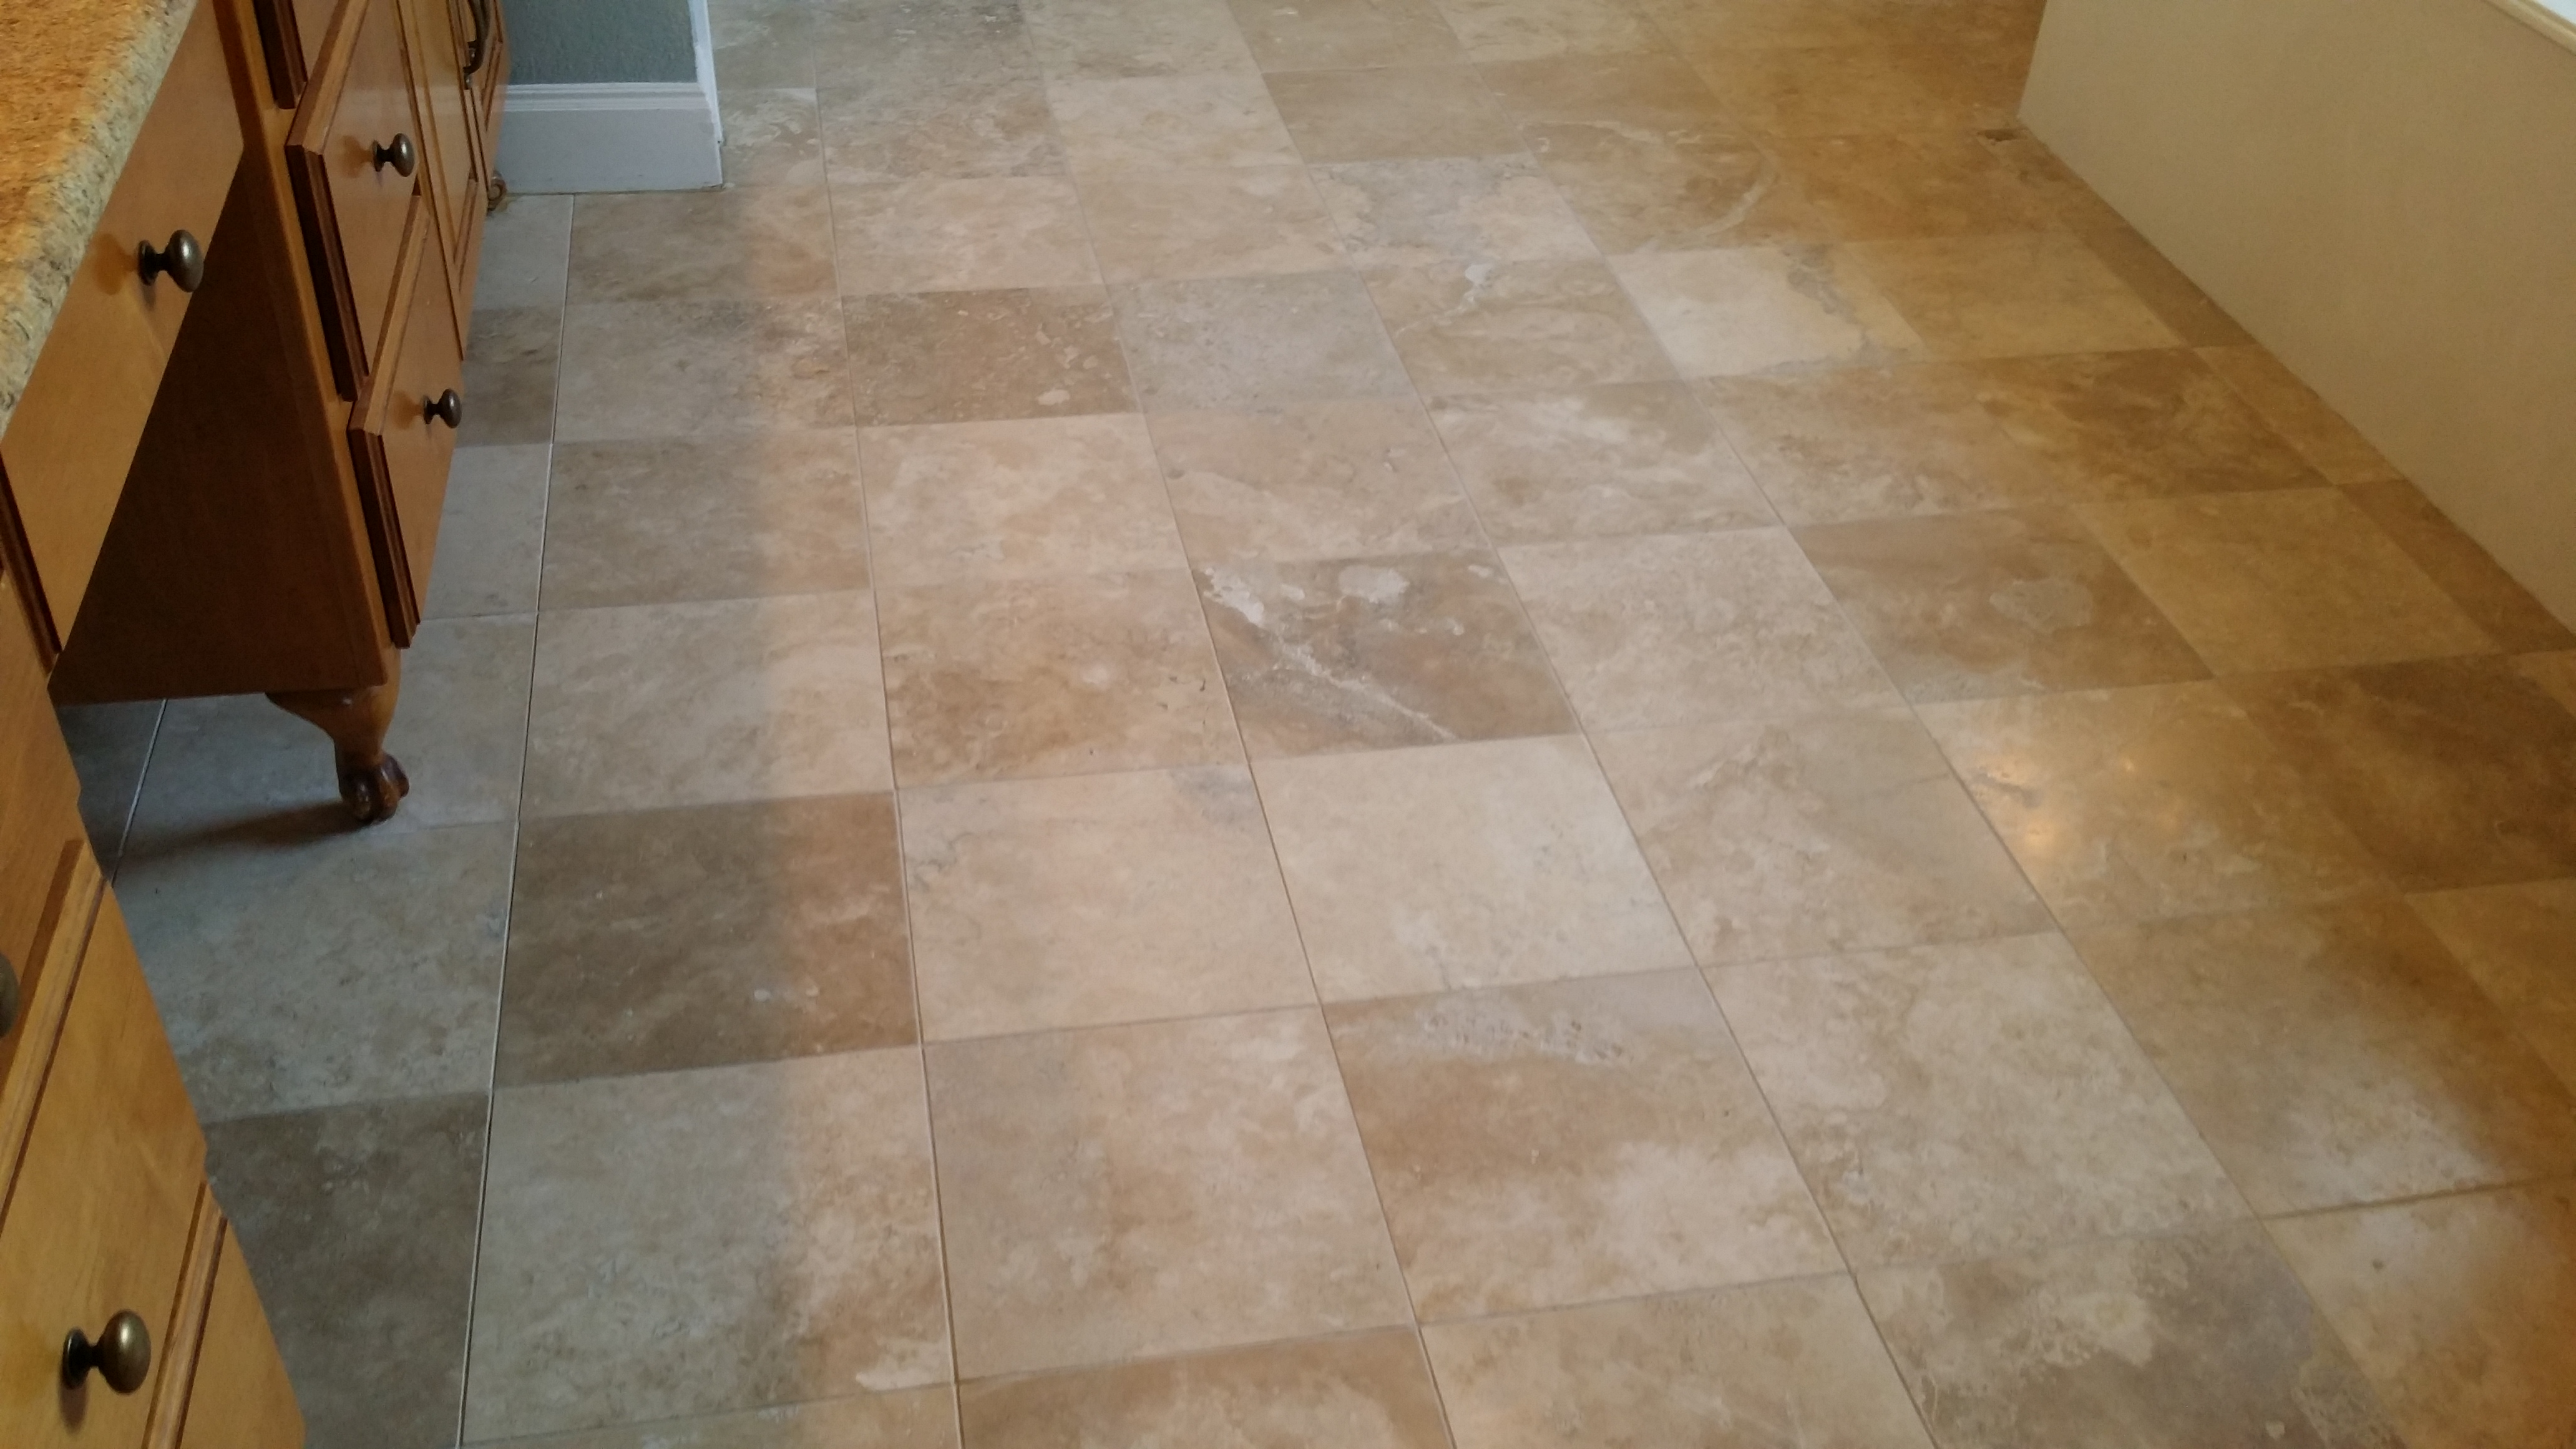 Travertine floor cleaned, resurfaced and sealed